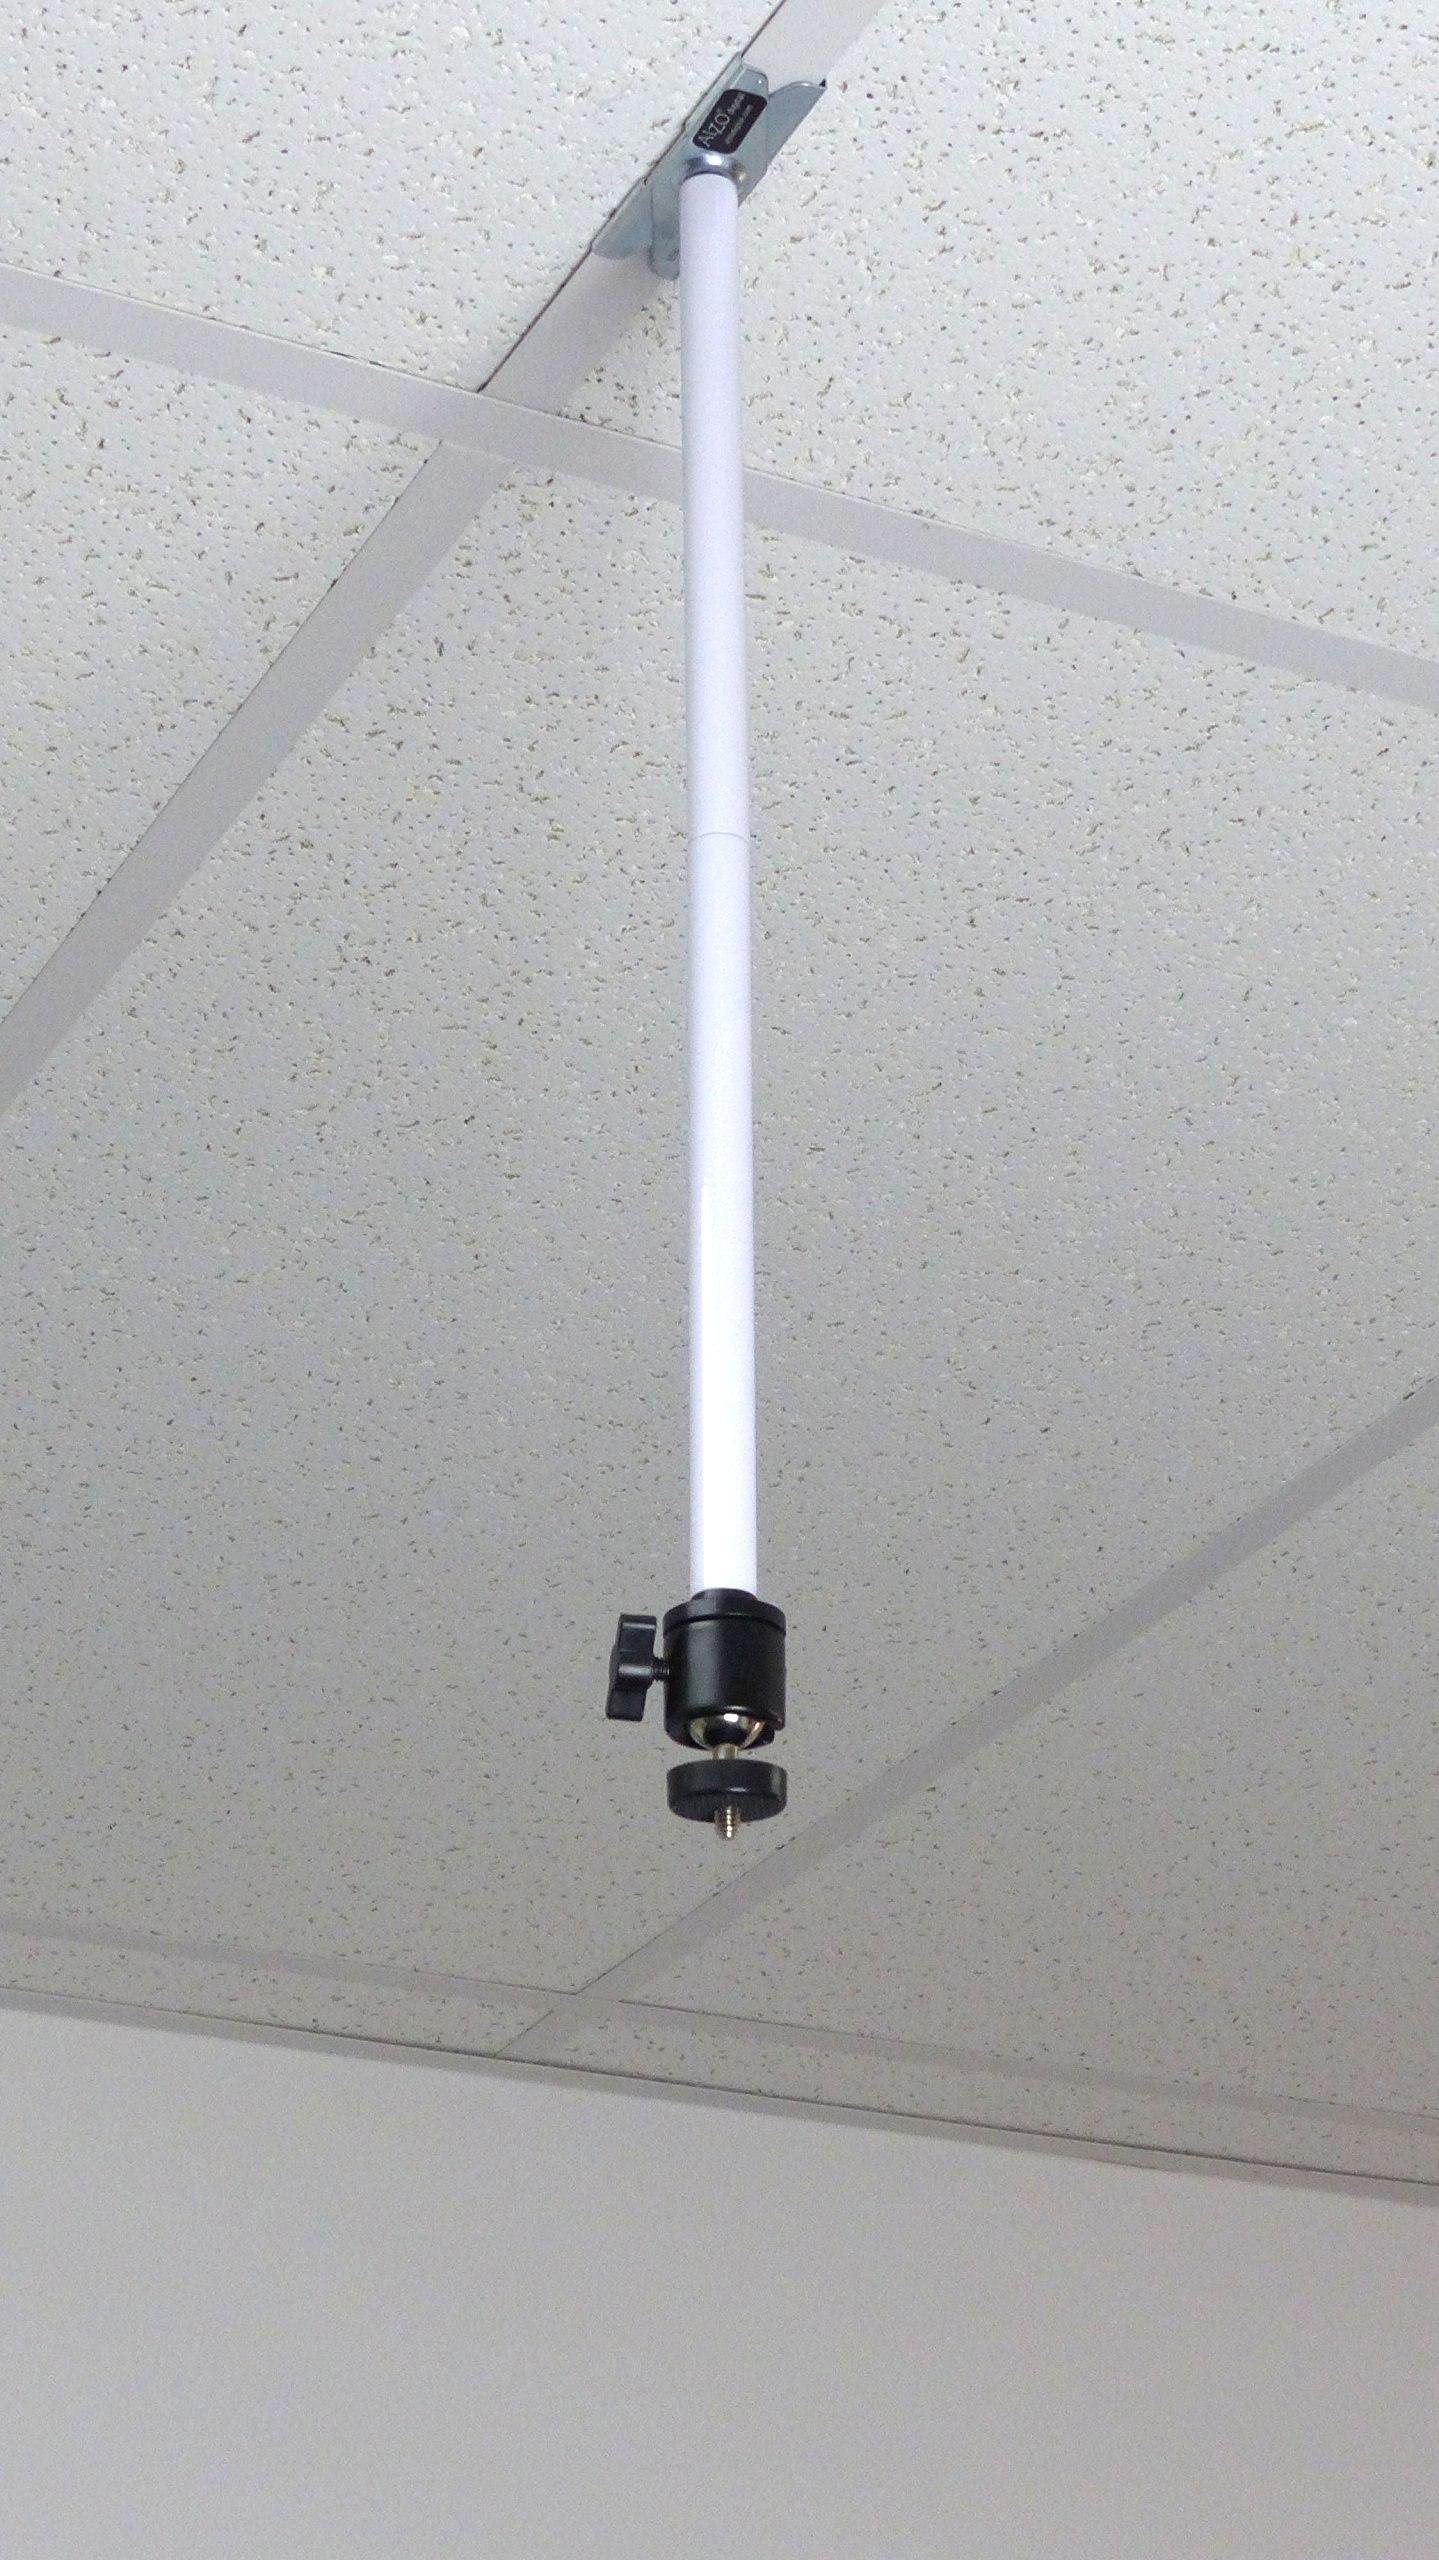 ALZO Suspended Drop Ceiling Video Pico Mini Projector Mount Bracket